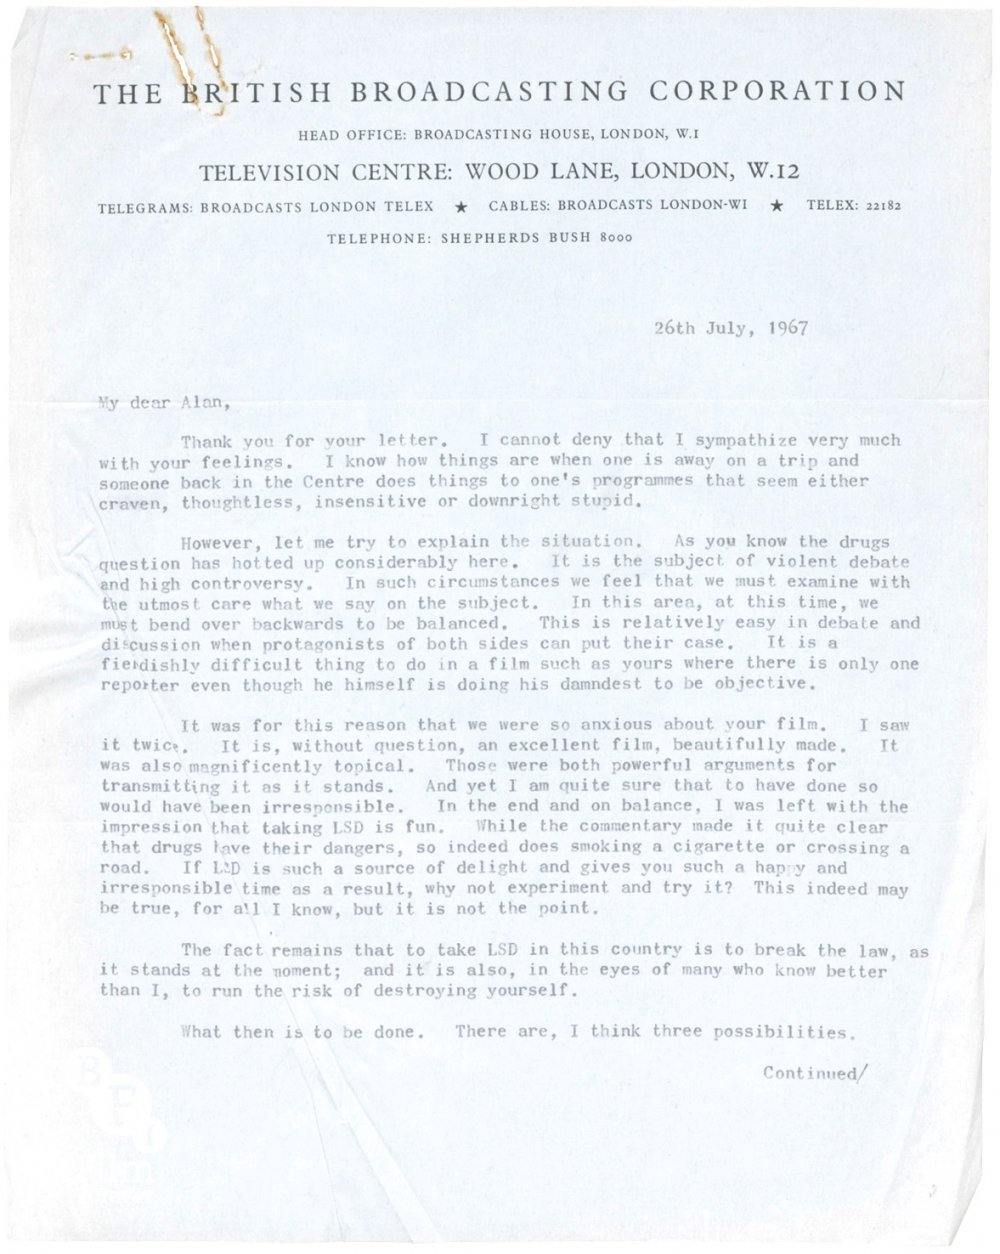 Letter from David Attenborough to Alan Whicker regarding Love Generation, 26 July 1967